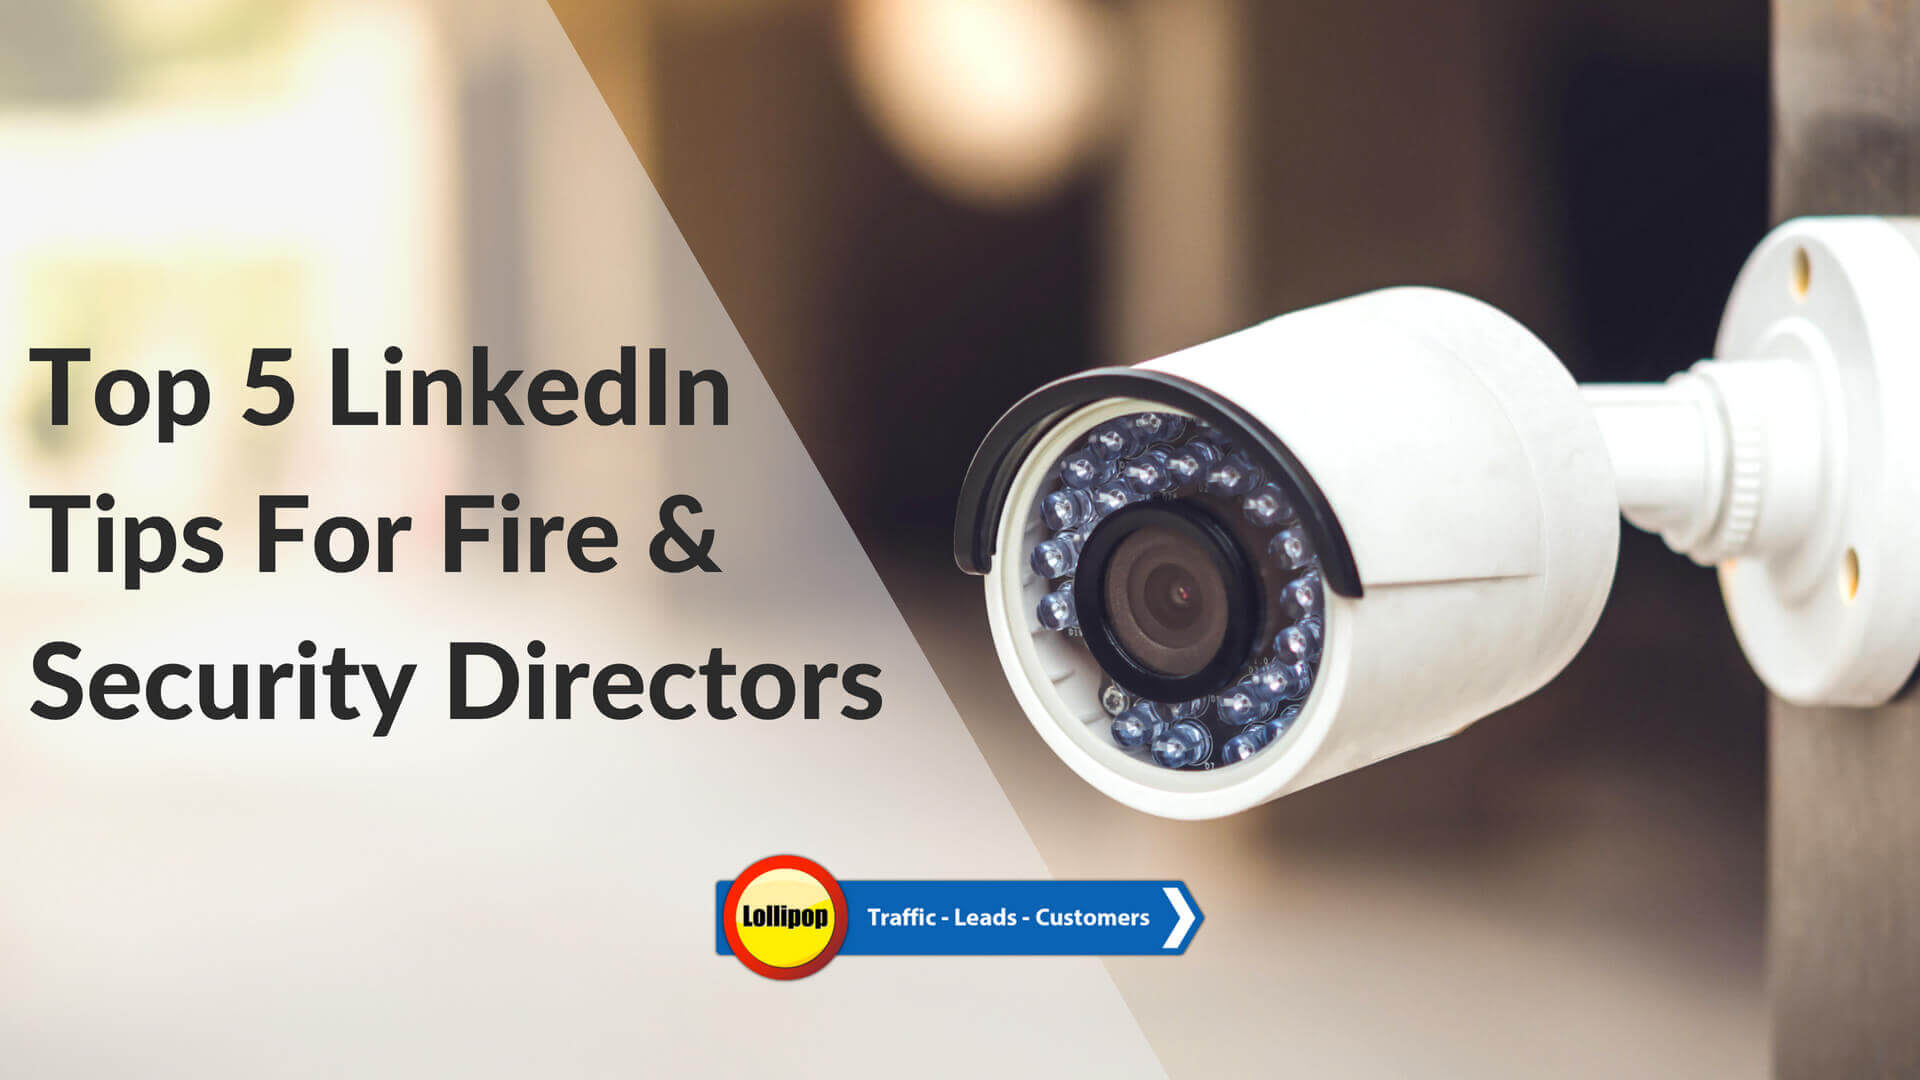 Linkedin Tips For Fire & Security Directors